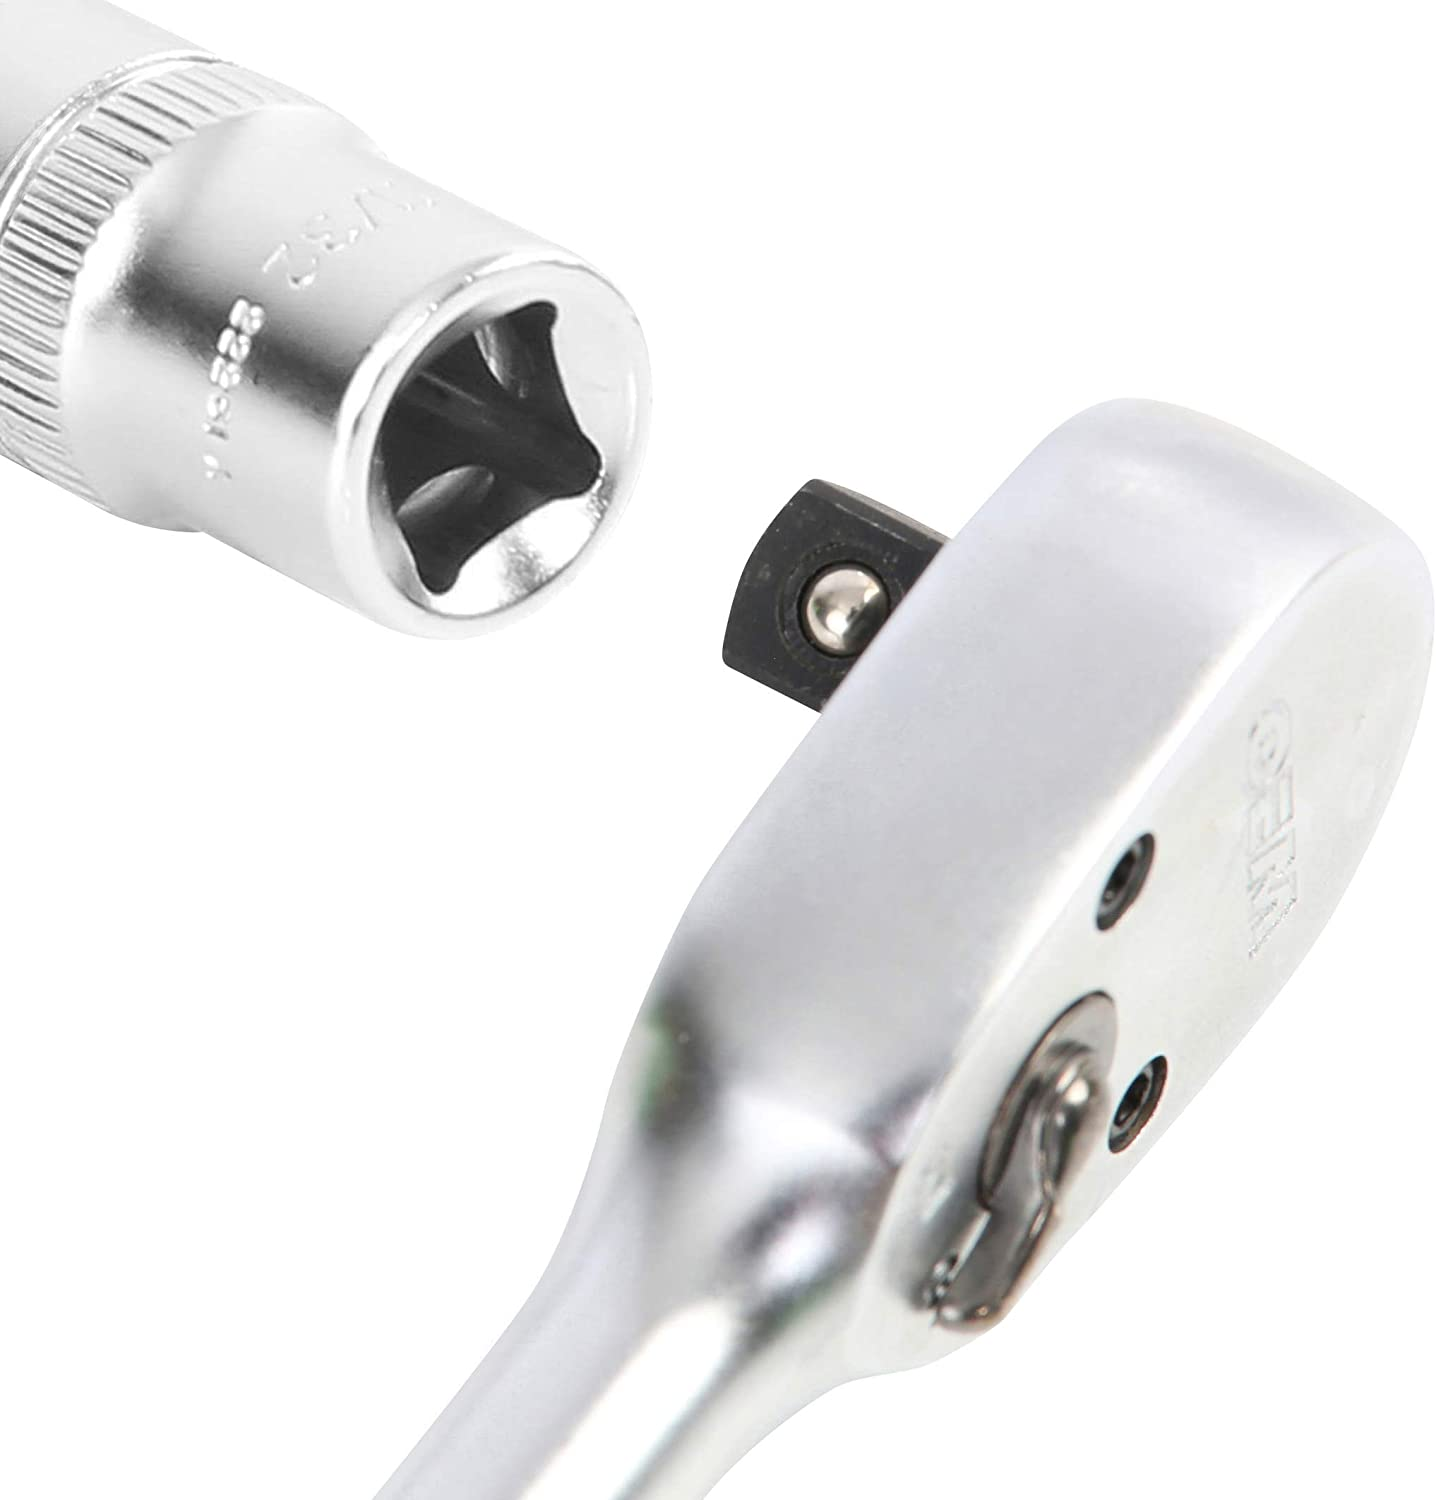 in Your Automobile Resists Rust Deep Socket Accesses Hard to Reach Fasteners OEMTOOLS 22260 Deep 5//16 Inch Socket 6 Point and at Work Remove /& Drive Bolts Commonly Used at Home 1//4 Drive